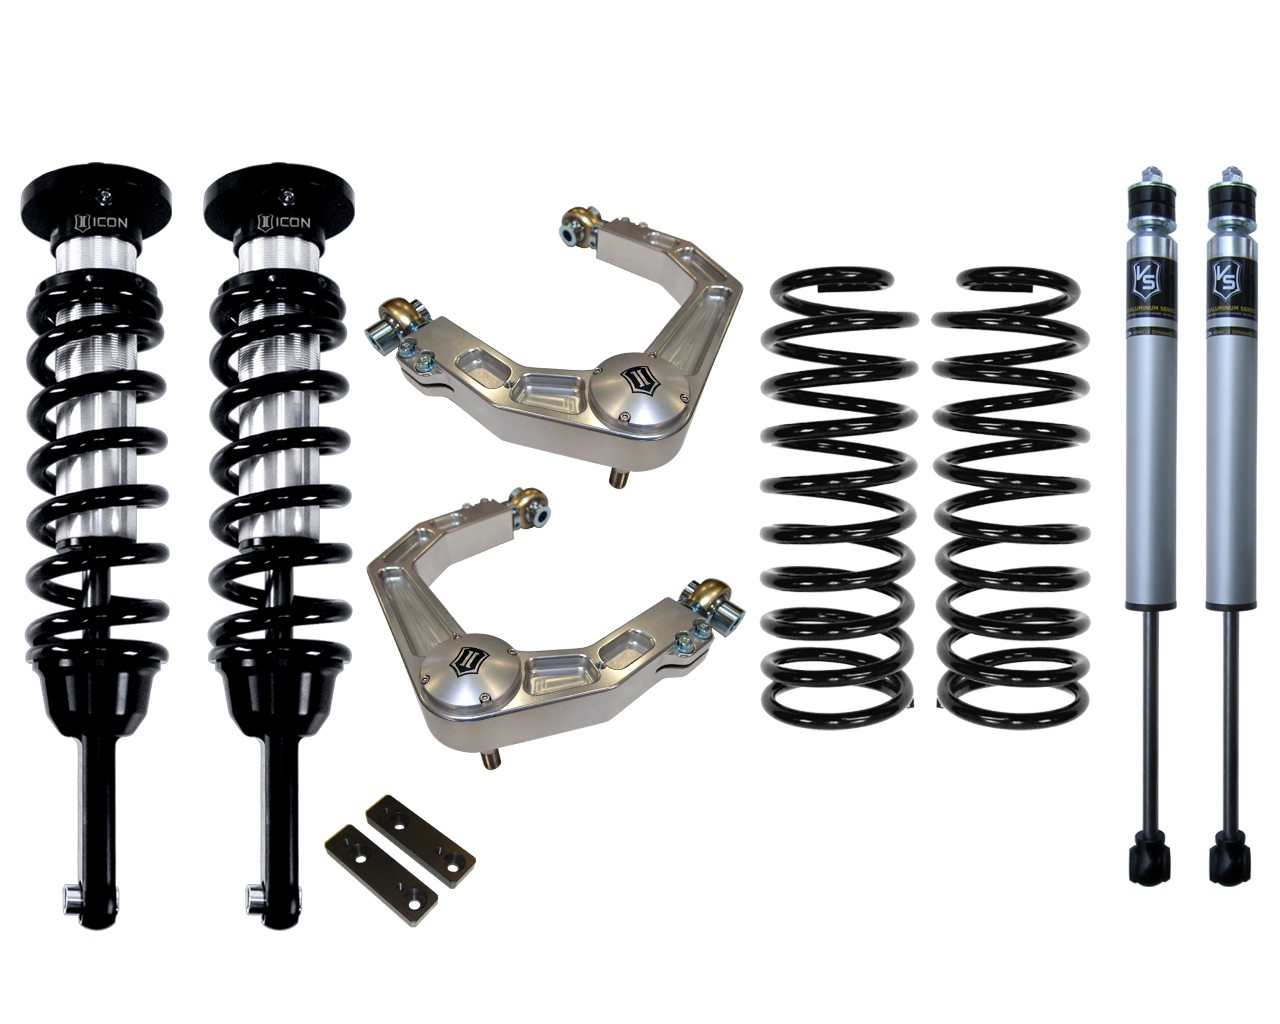 2010 - 2014 FJ Cruiser Suspension System - Stage 2